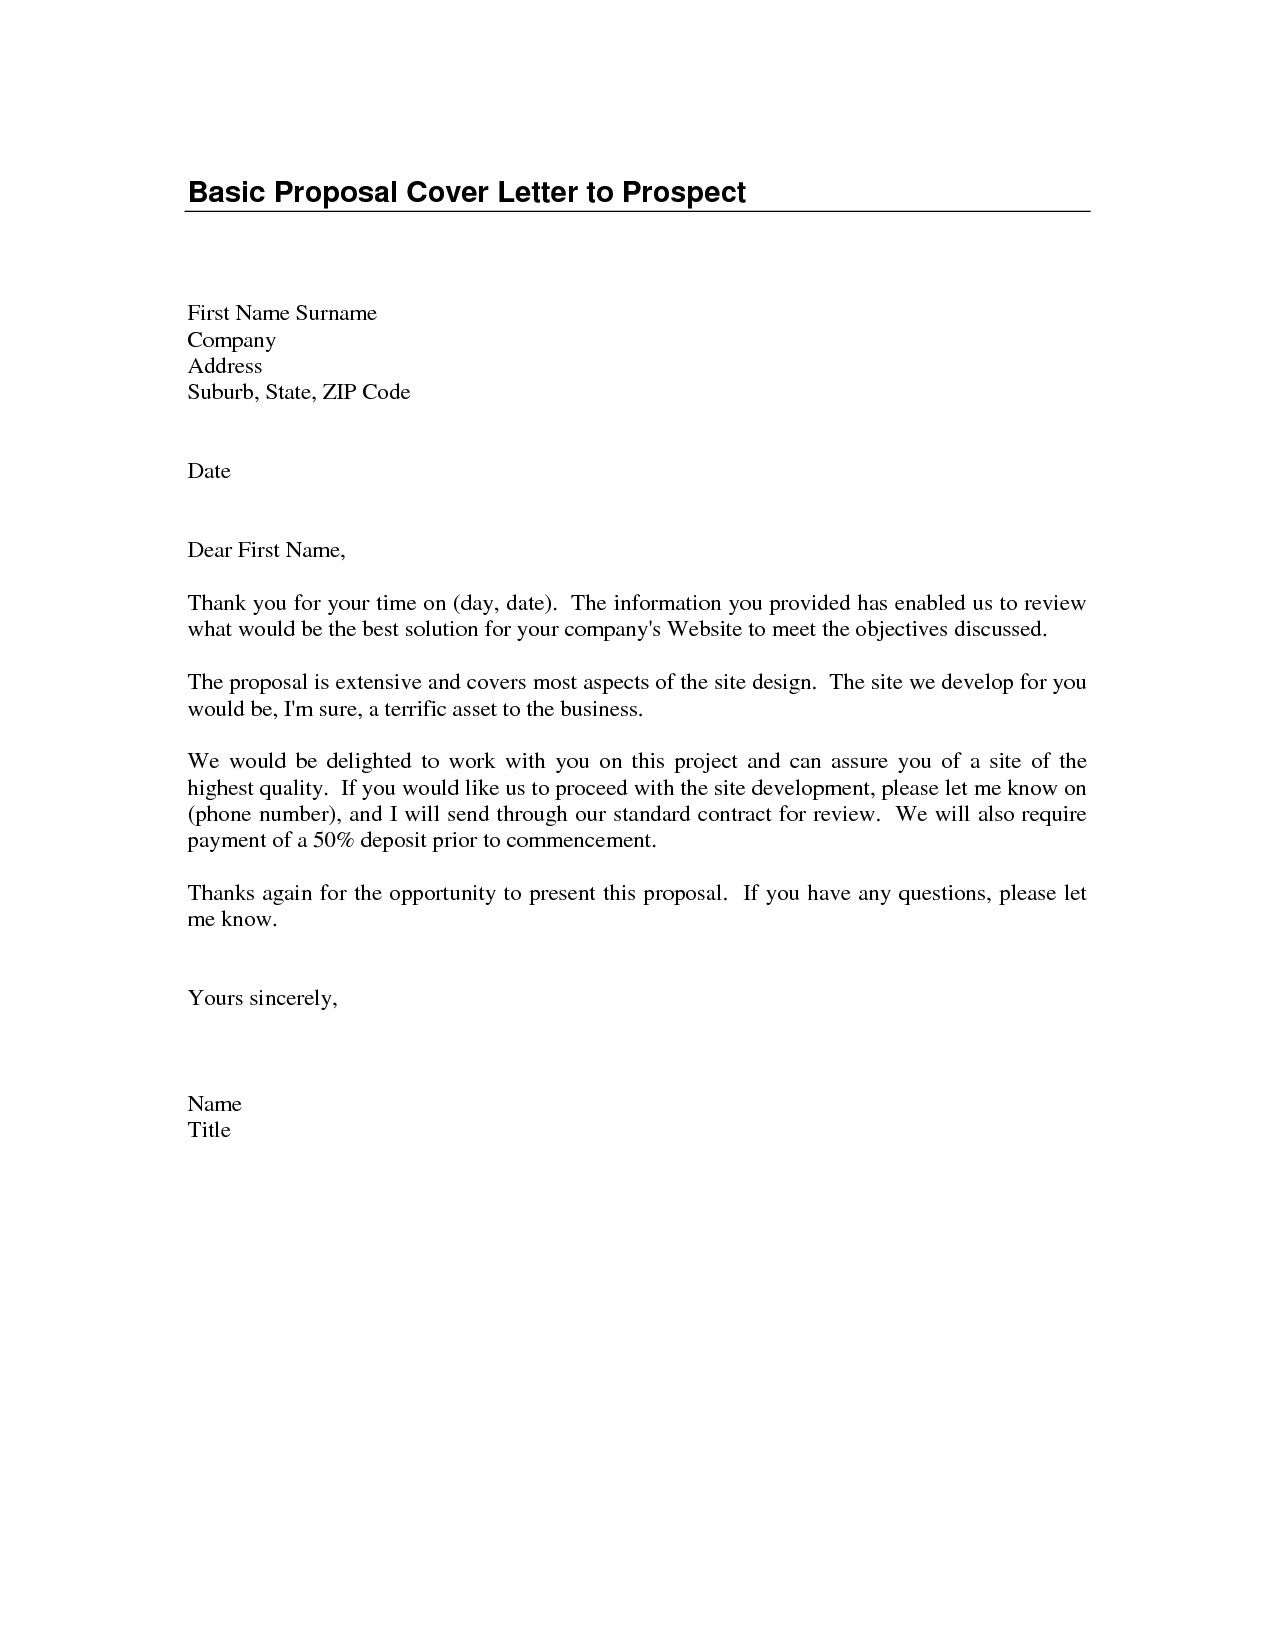 23 Short Cover Letter Examples In 2020 Cover Letter For Resume